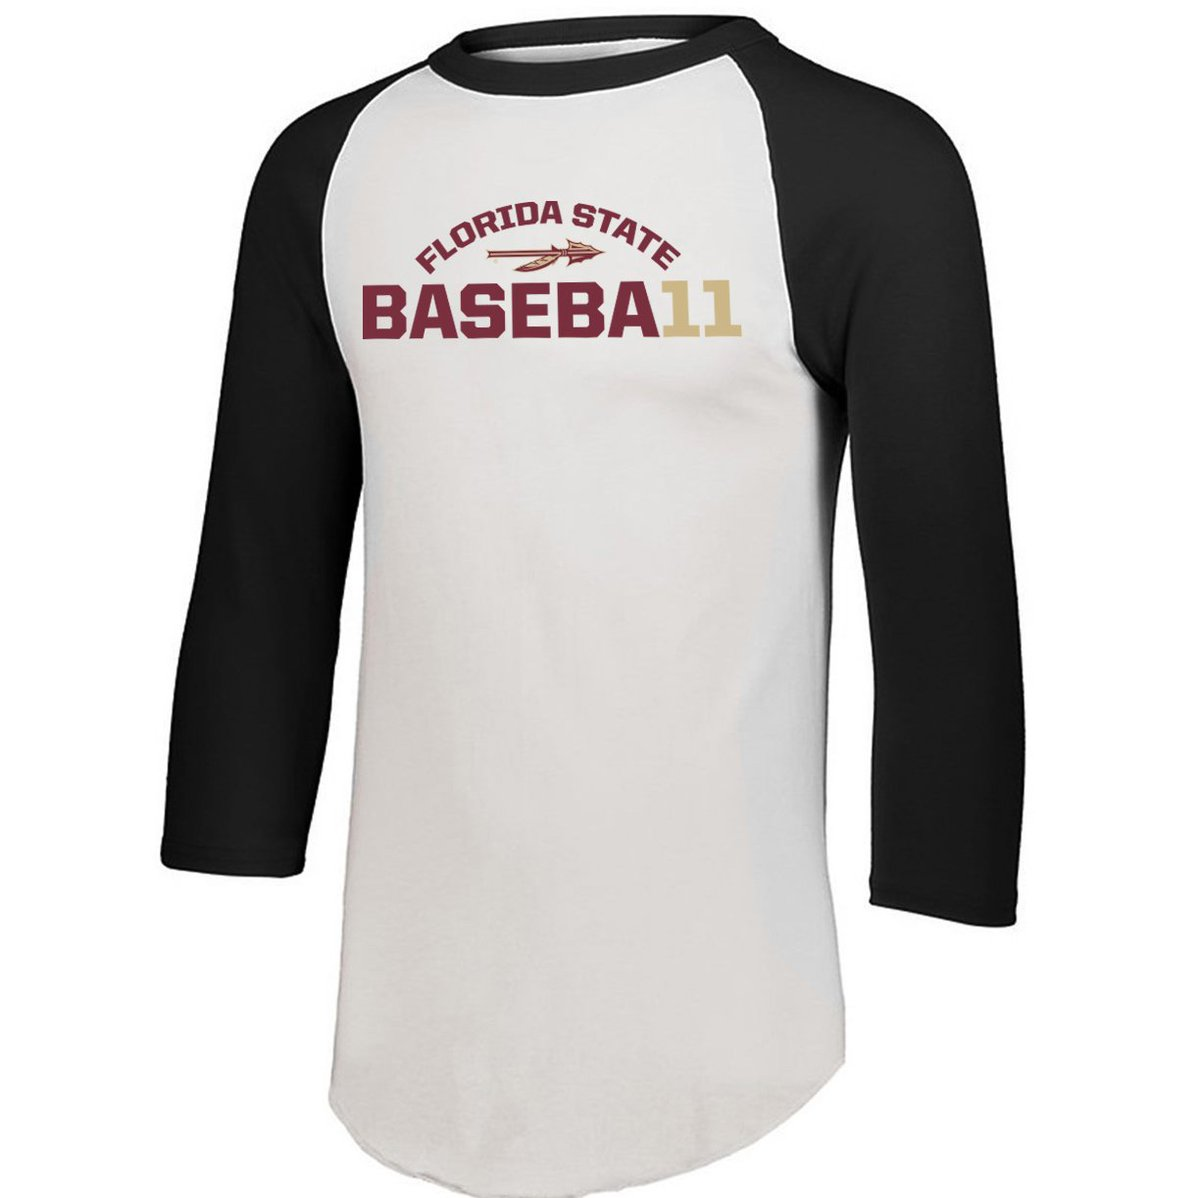 test Twitter Media - Retweet for a chance to be mailed an FSU Baseba11 tee!  These will be given away to the first 350 FSU students at Saturday's 1 PM DH.   Students will be given a voucher after showing their FSUID and will use the voucher to redeem the t-shirt at the end of the 3rd inning. https://t.co/HIUAdqBv5A